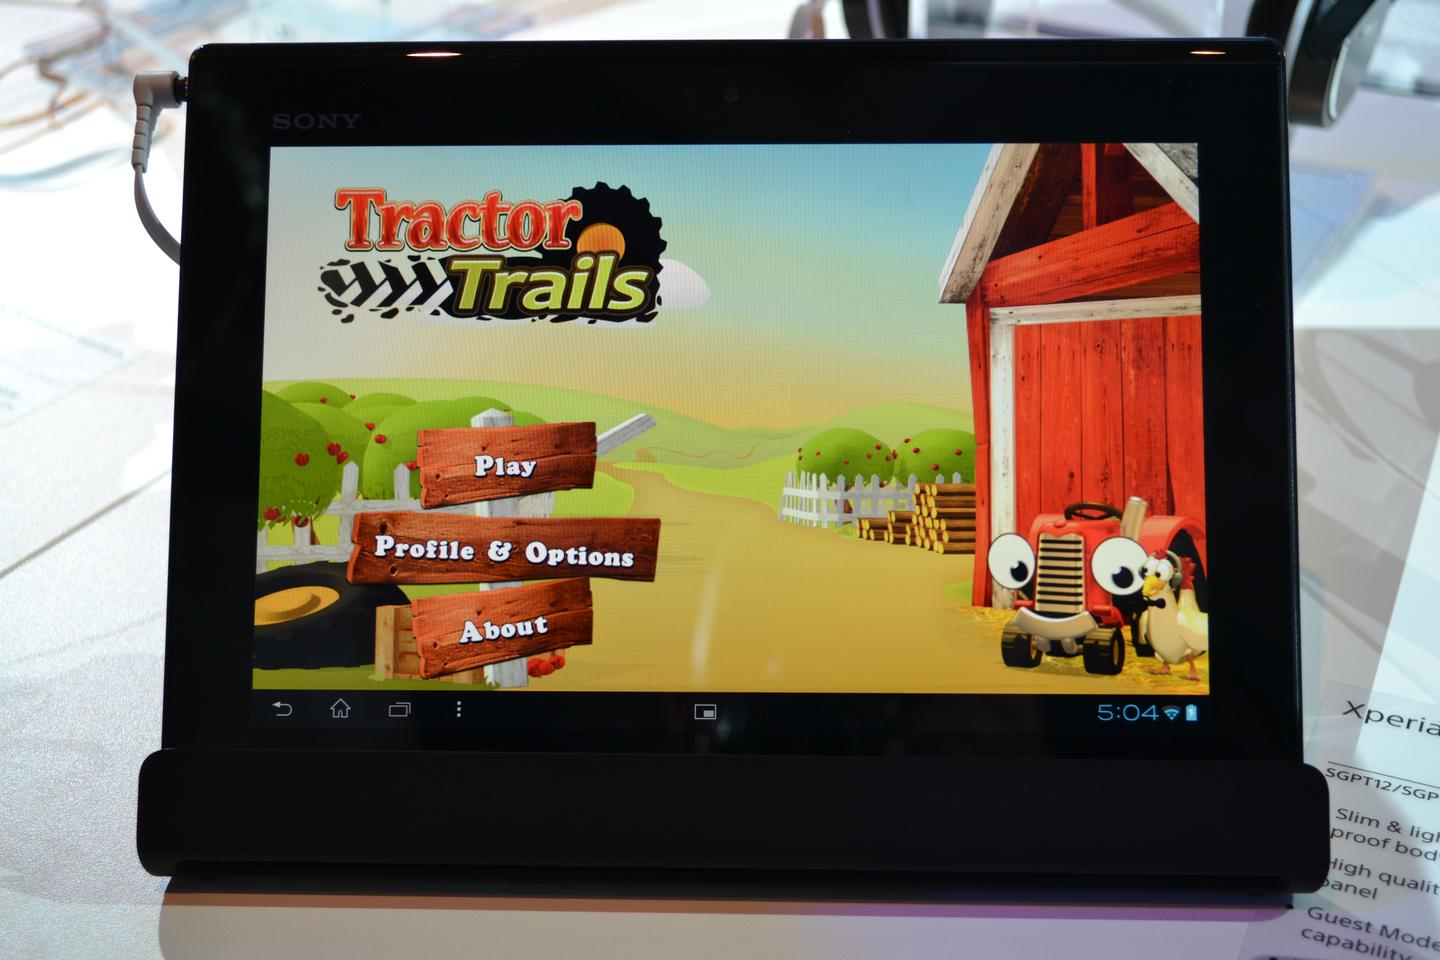 Sony's Xperia Tablet S unveiled at IFA 2012 is the first non-smartphone to join the Xperia stable